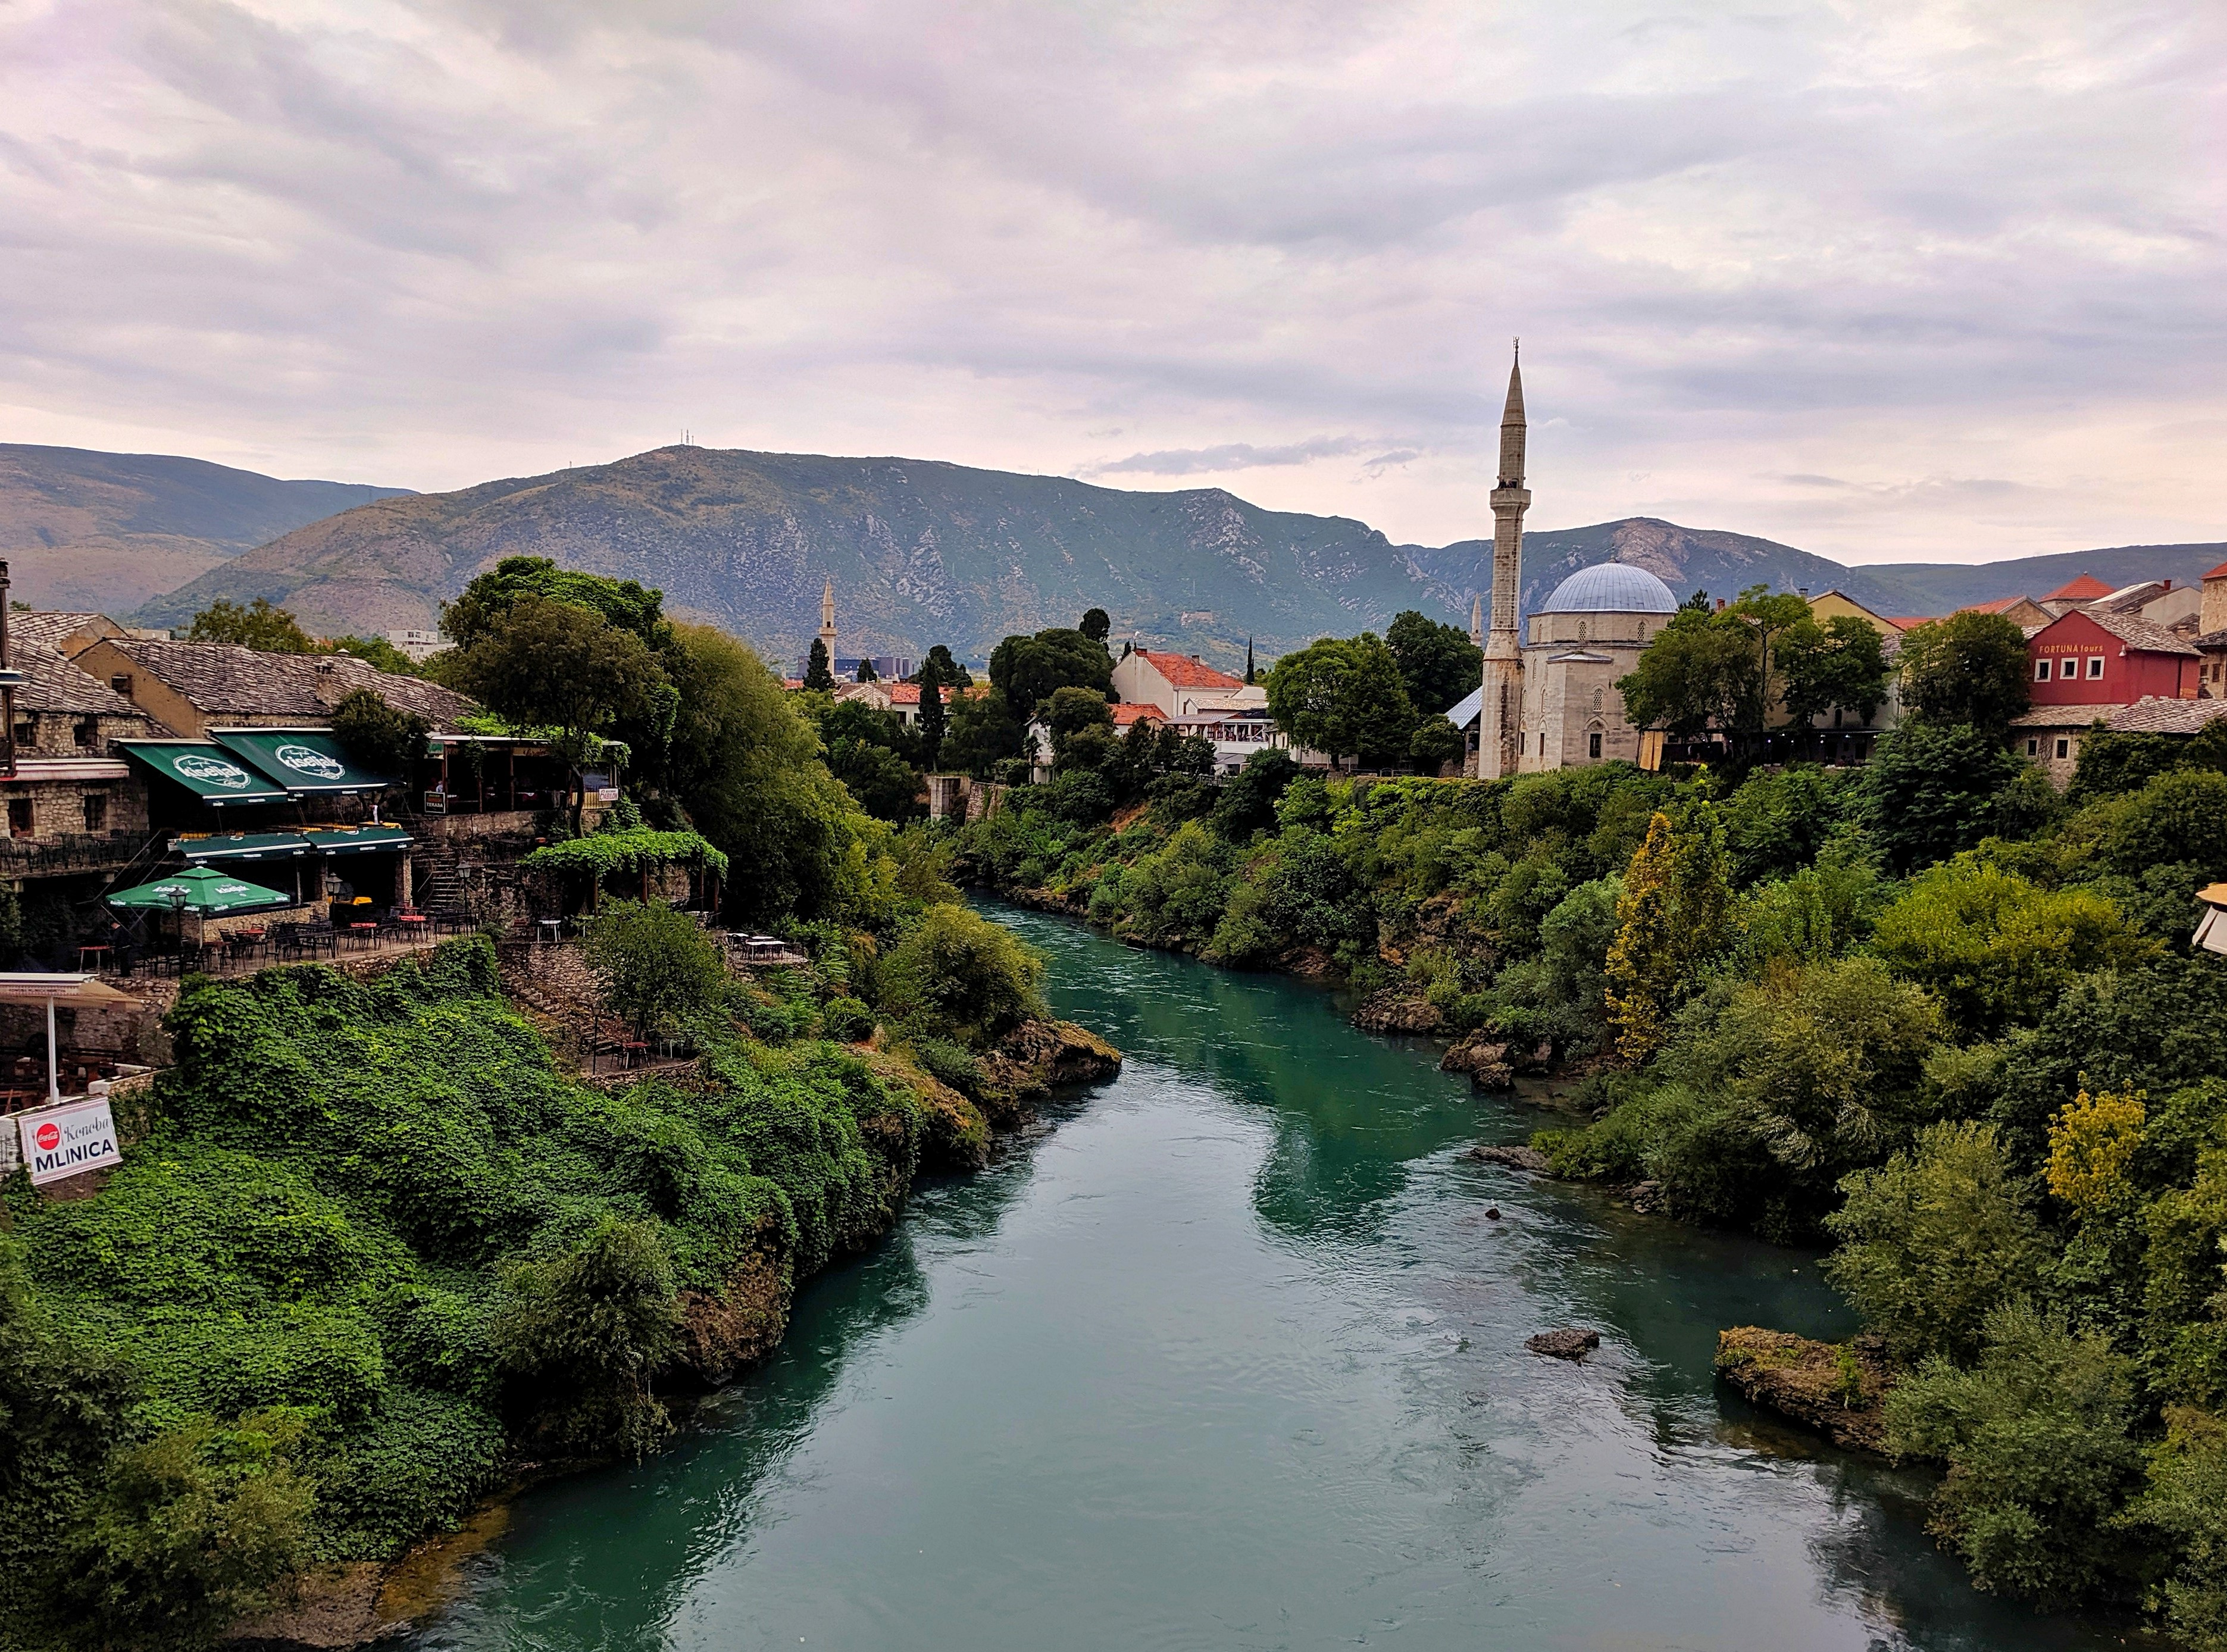 Neretva river in Mostar. View from the Old Bridge